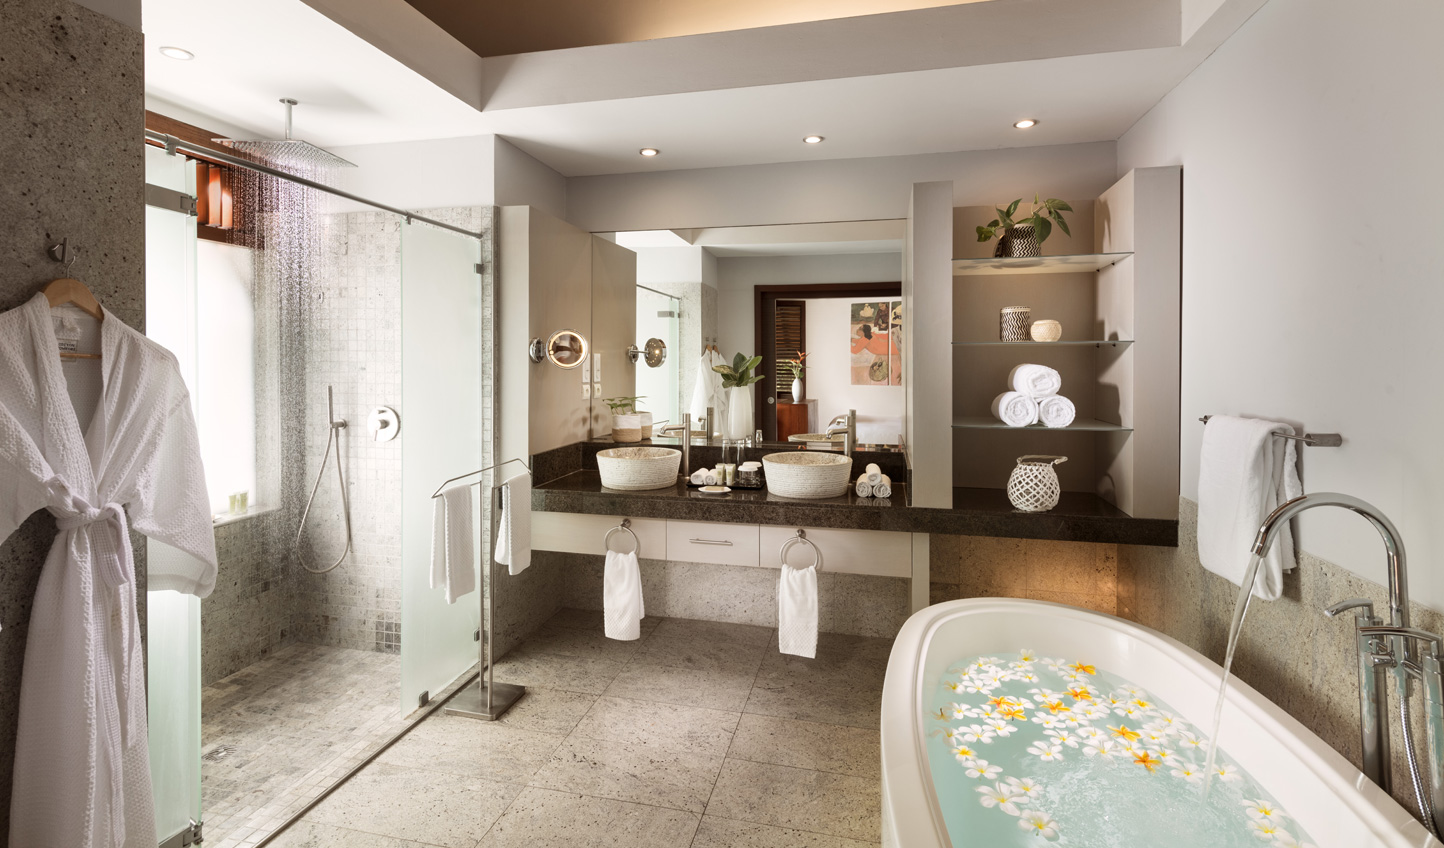 Sleek marble bathrooms add to the tranquil experience